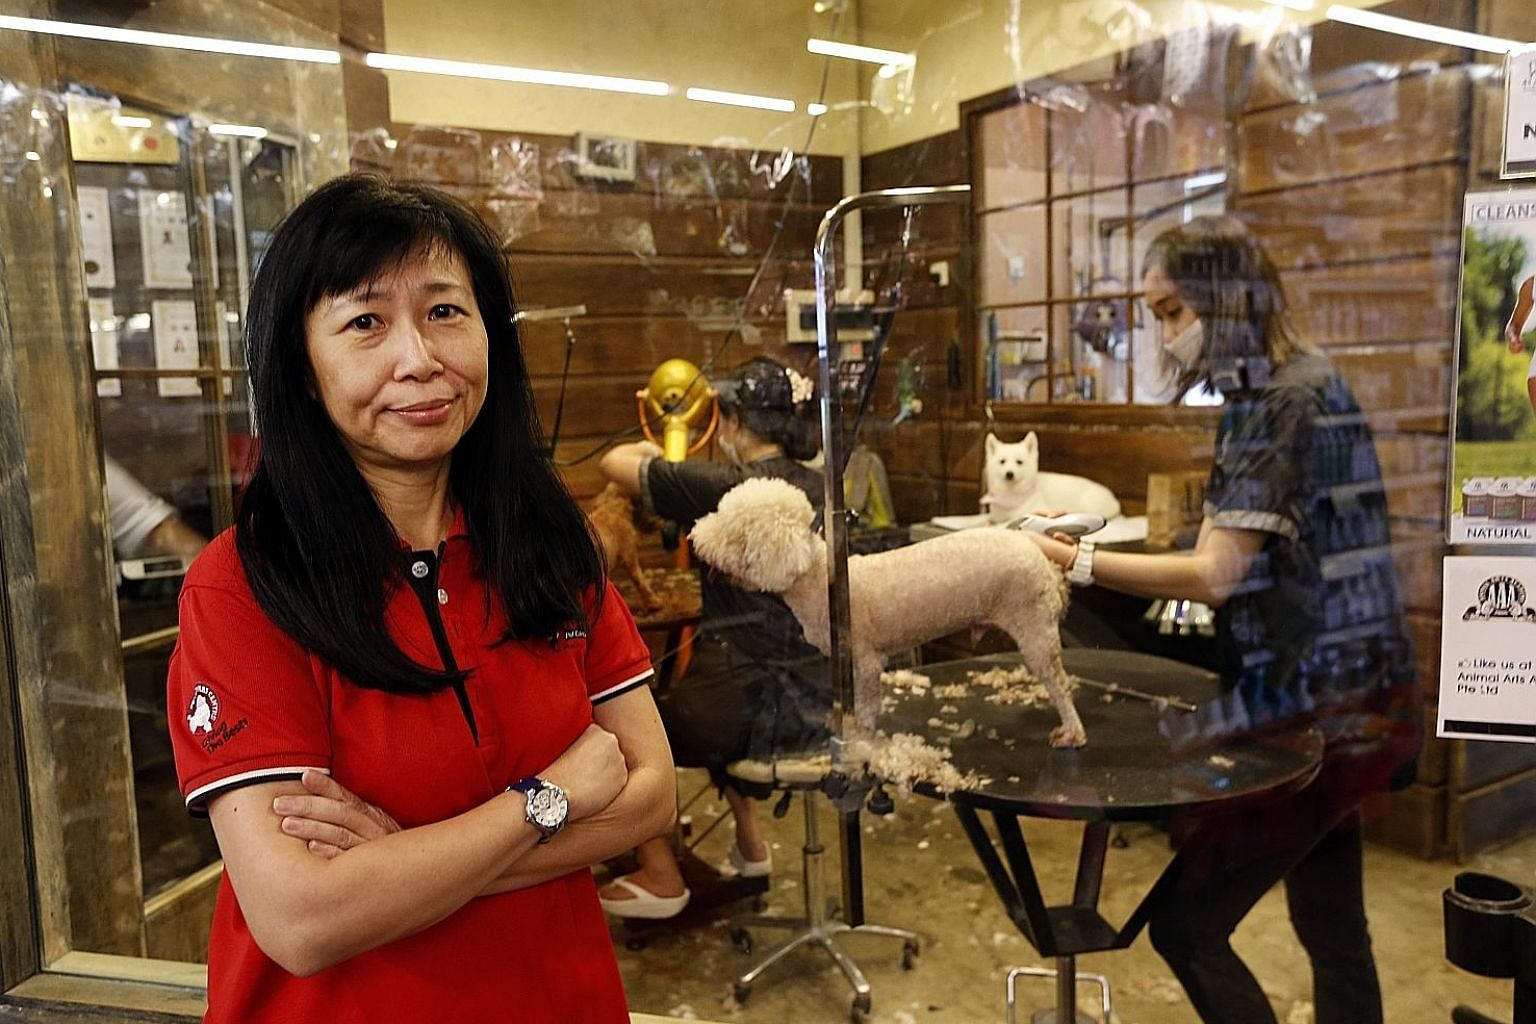 Owndays managing director Takeshi Umiyama says the brand reinvented the experience of buying spectacles. Pet Lovers Centre's senior marketing manager Christine Tan says the secret to the retail chain's success is listening to its customers. Gain City